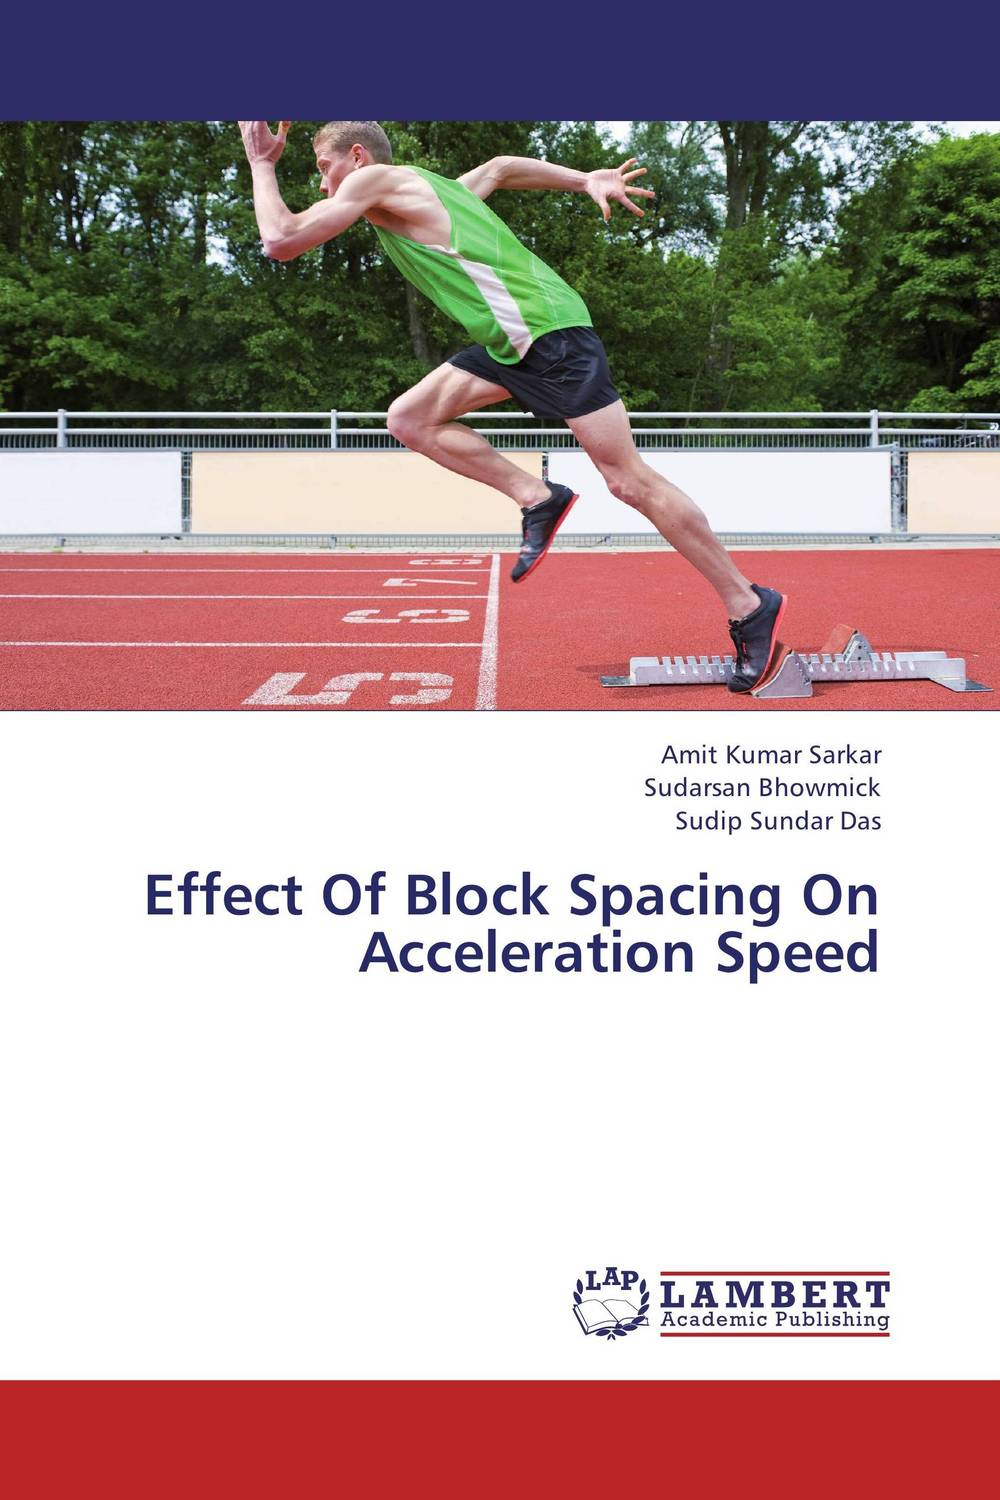 Effect Of Block Spacing On Acceleration Speed